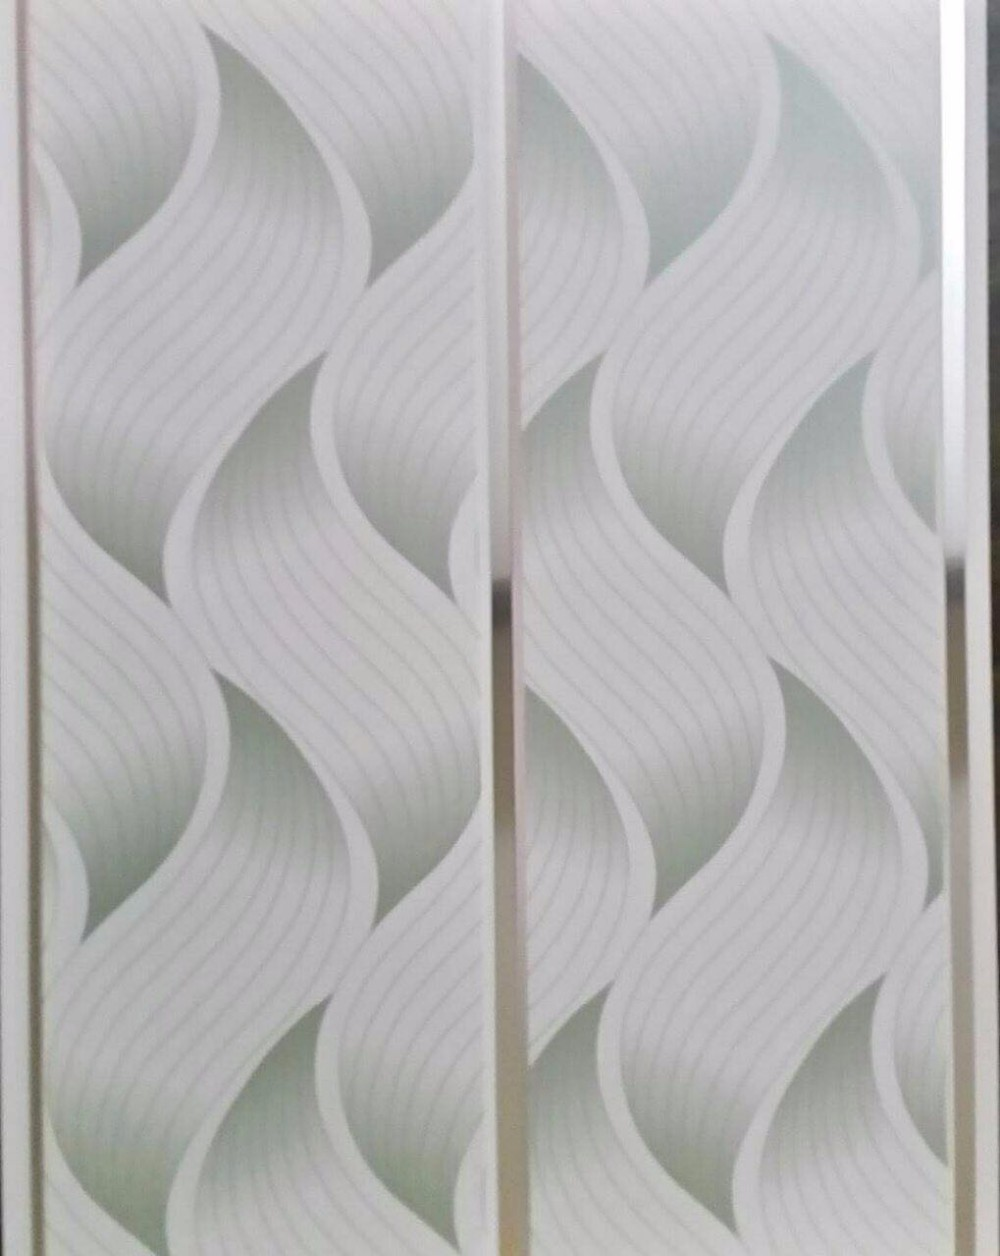 Hot selling waterproof interior bathroom pvc wall panels in china